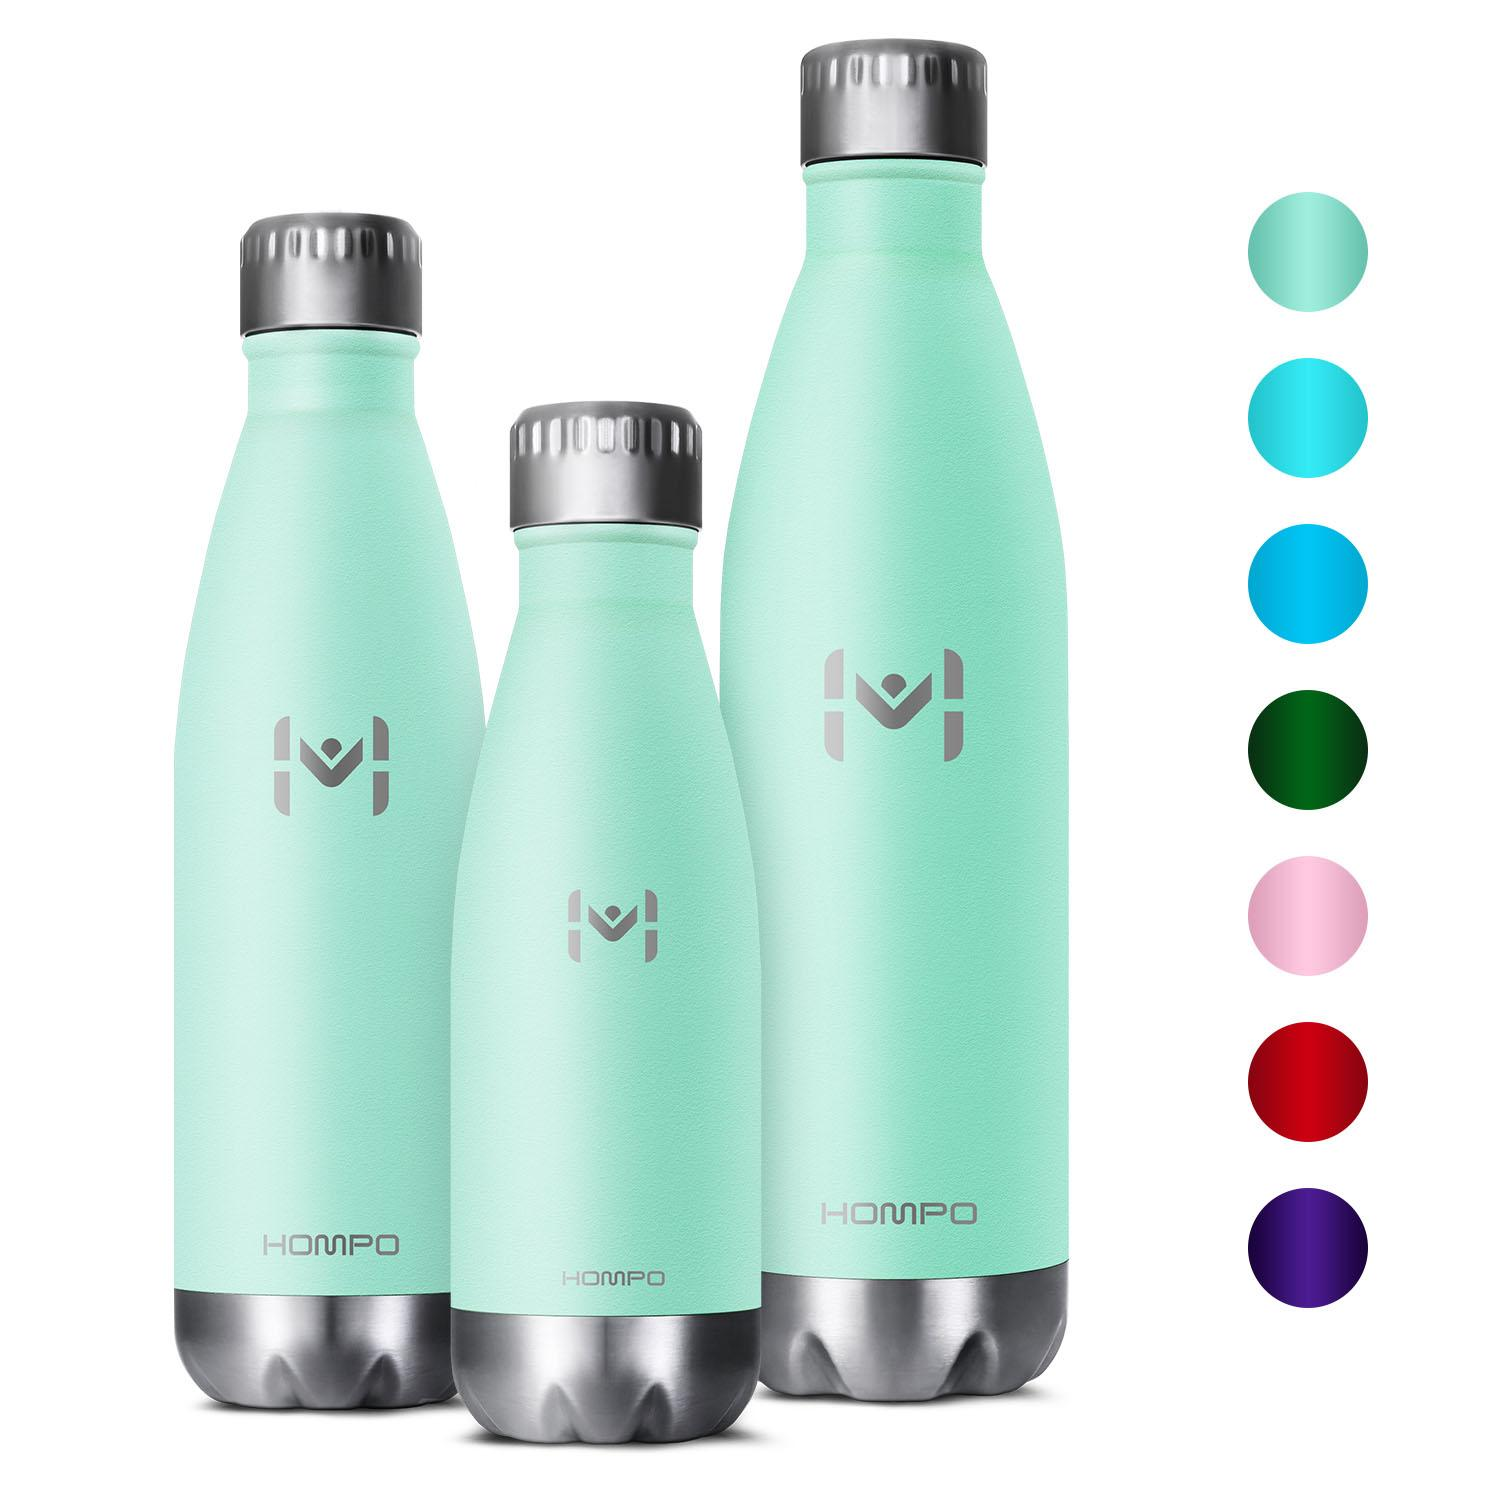 e6538076a HOMPO Stainless Steel Vacuum Insulated Thermal Flask 350ml Water Bottle -  BPA Free Vacuum Insulated Metal